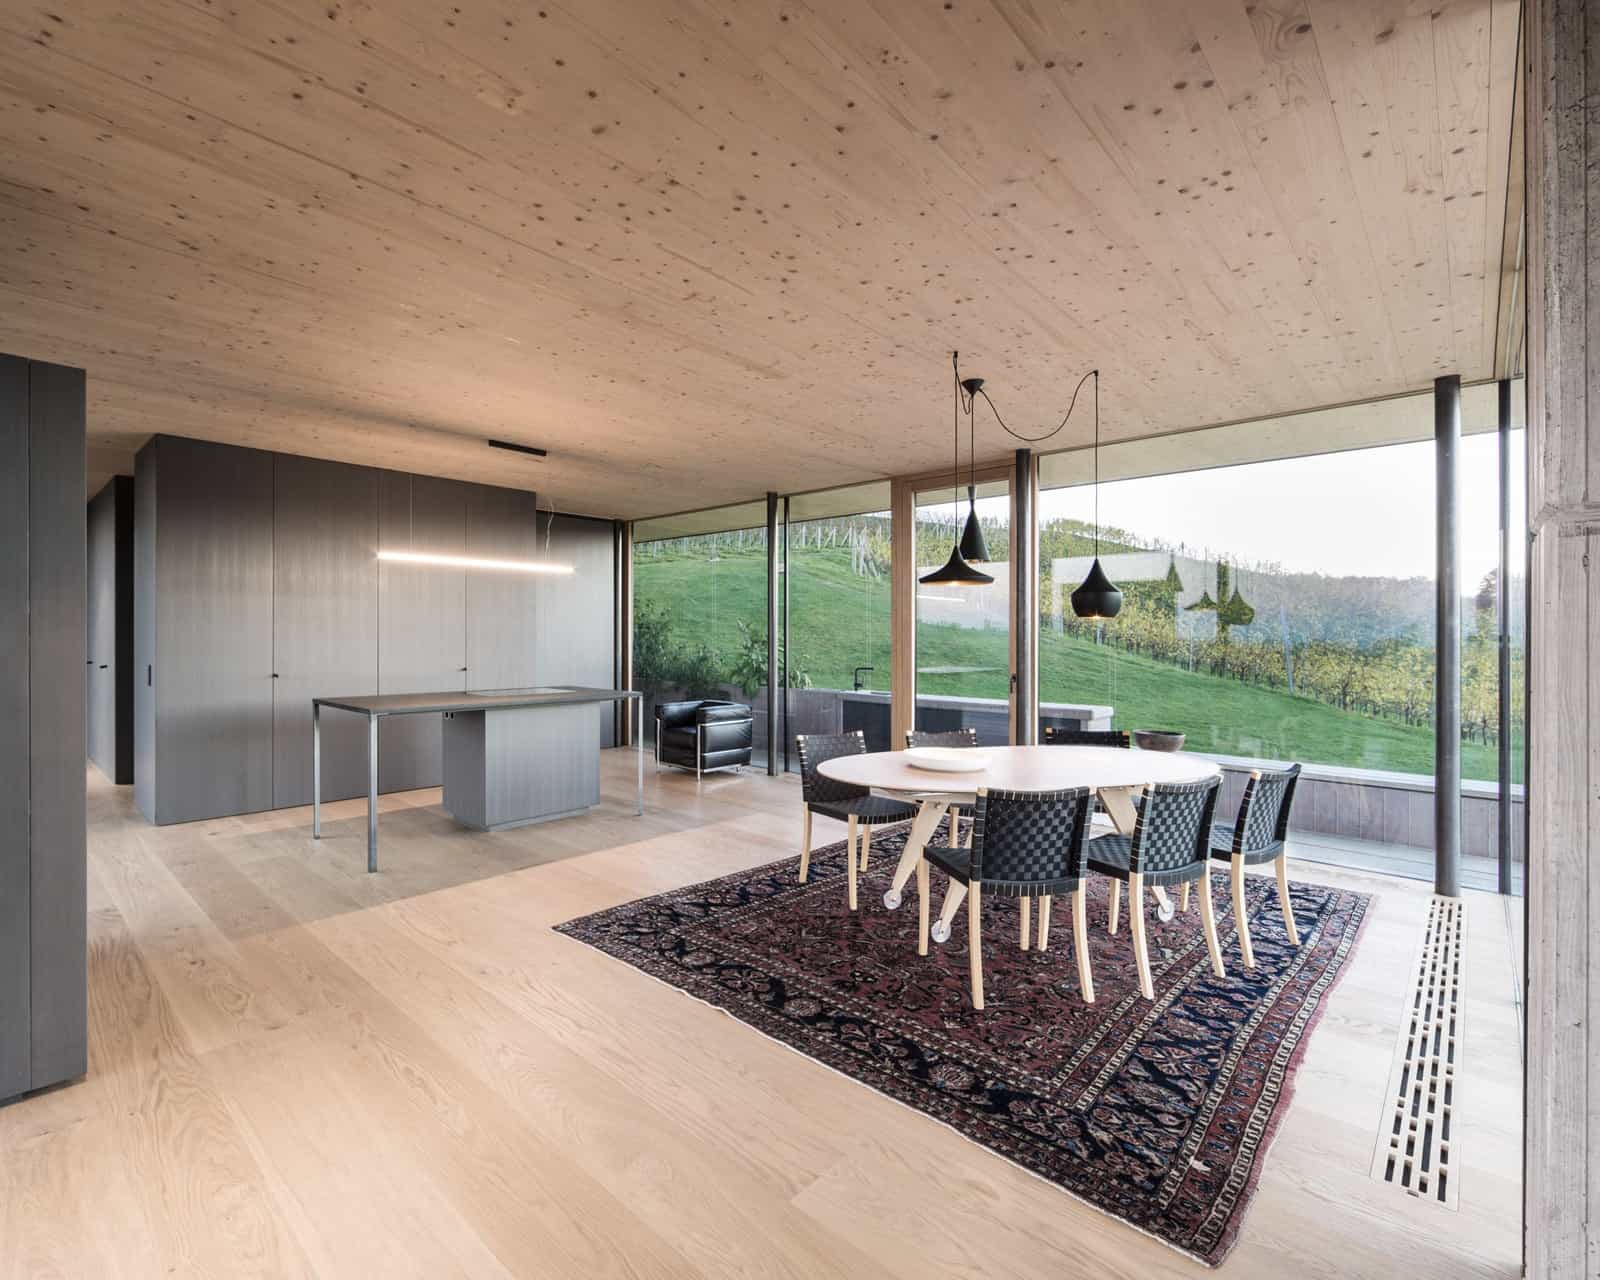 Modern Vineyard Home Materialized In The Heart of a Former Wine Press House (6)